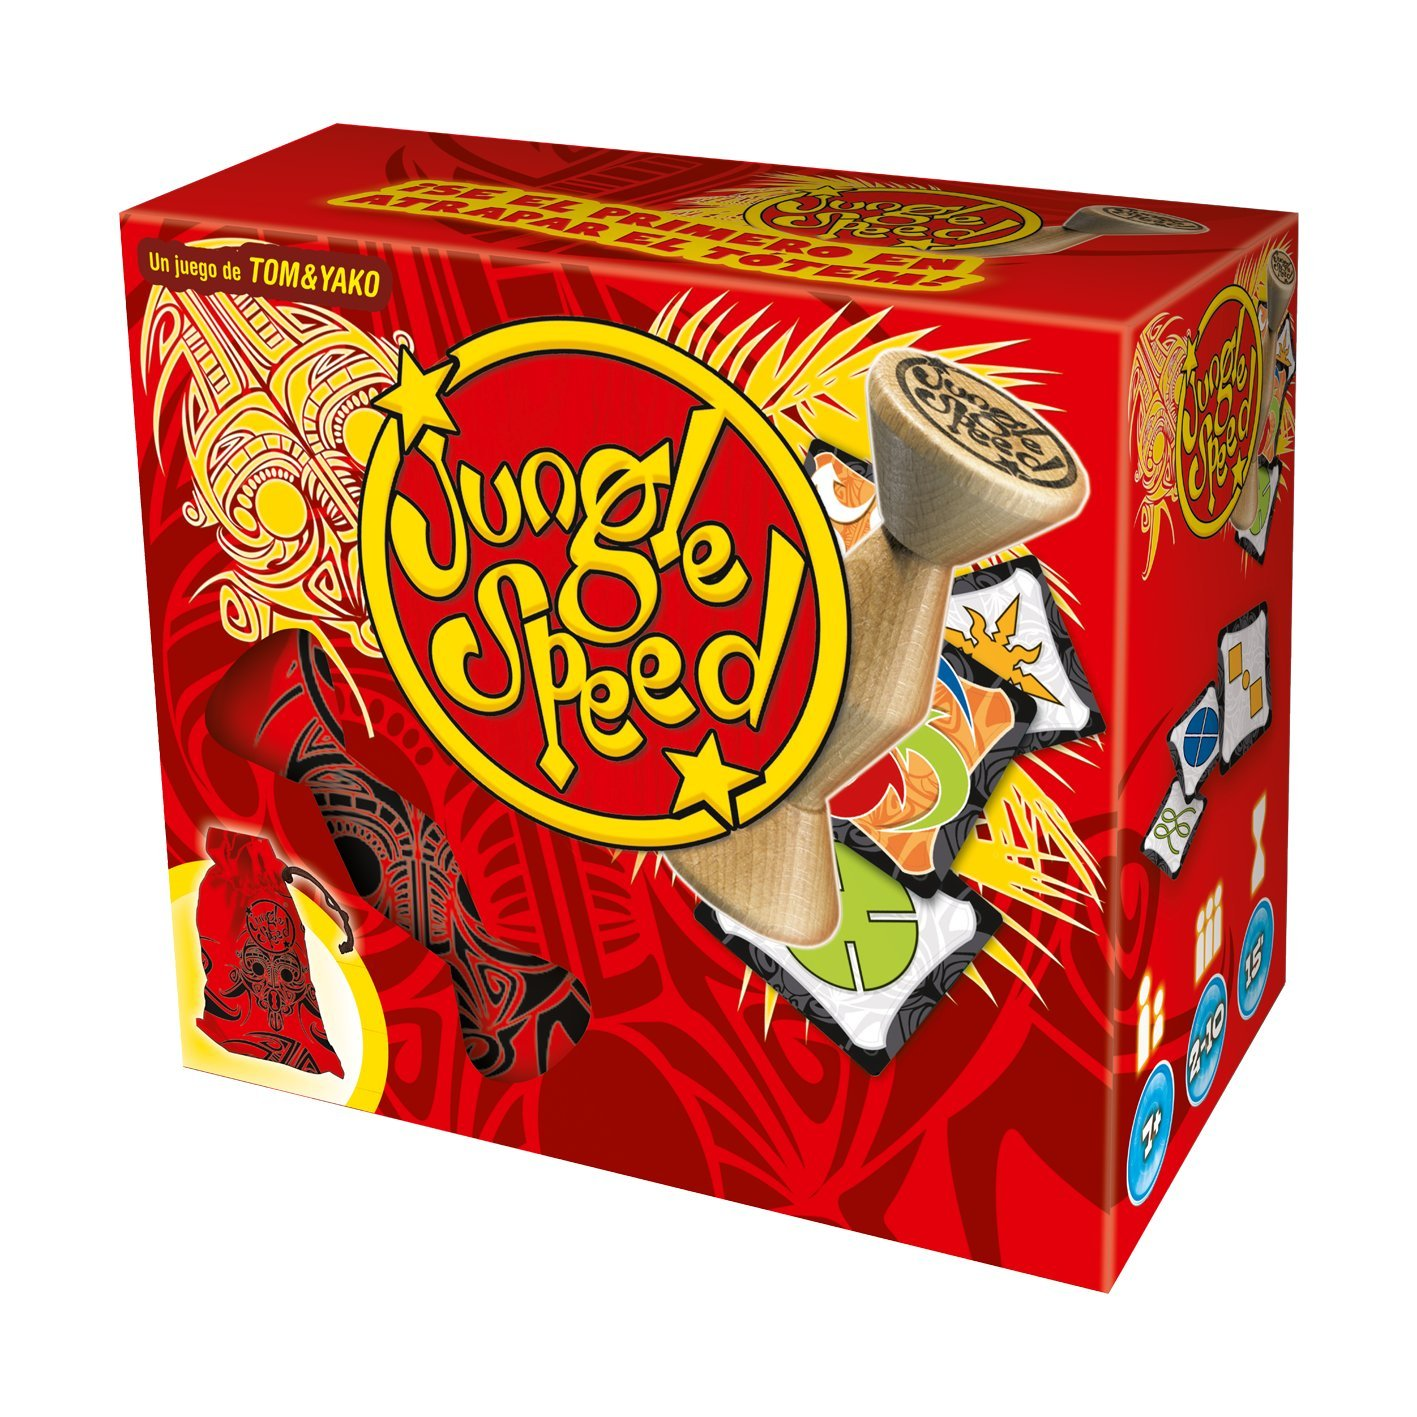 Jungle Speed https://amzn.to/2B0W4Yt